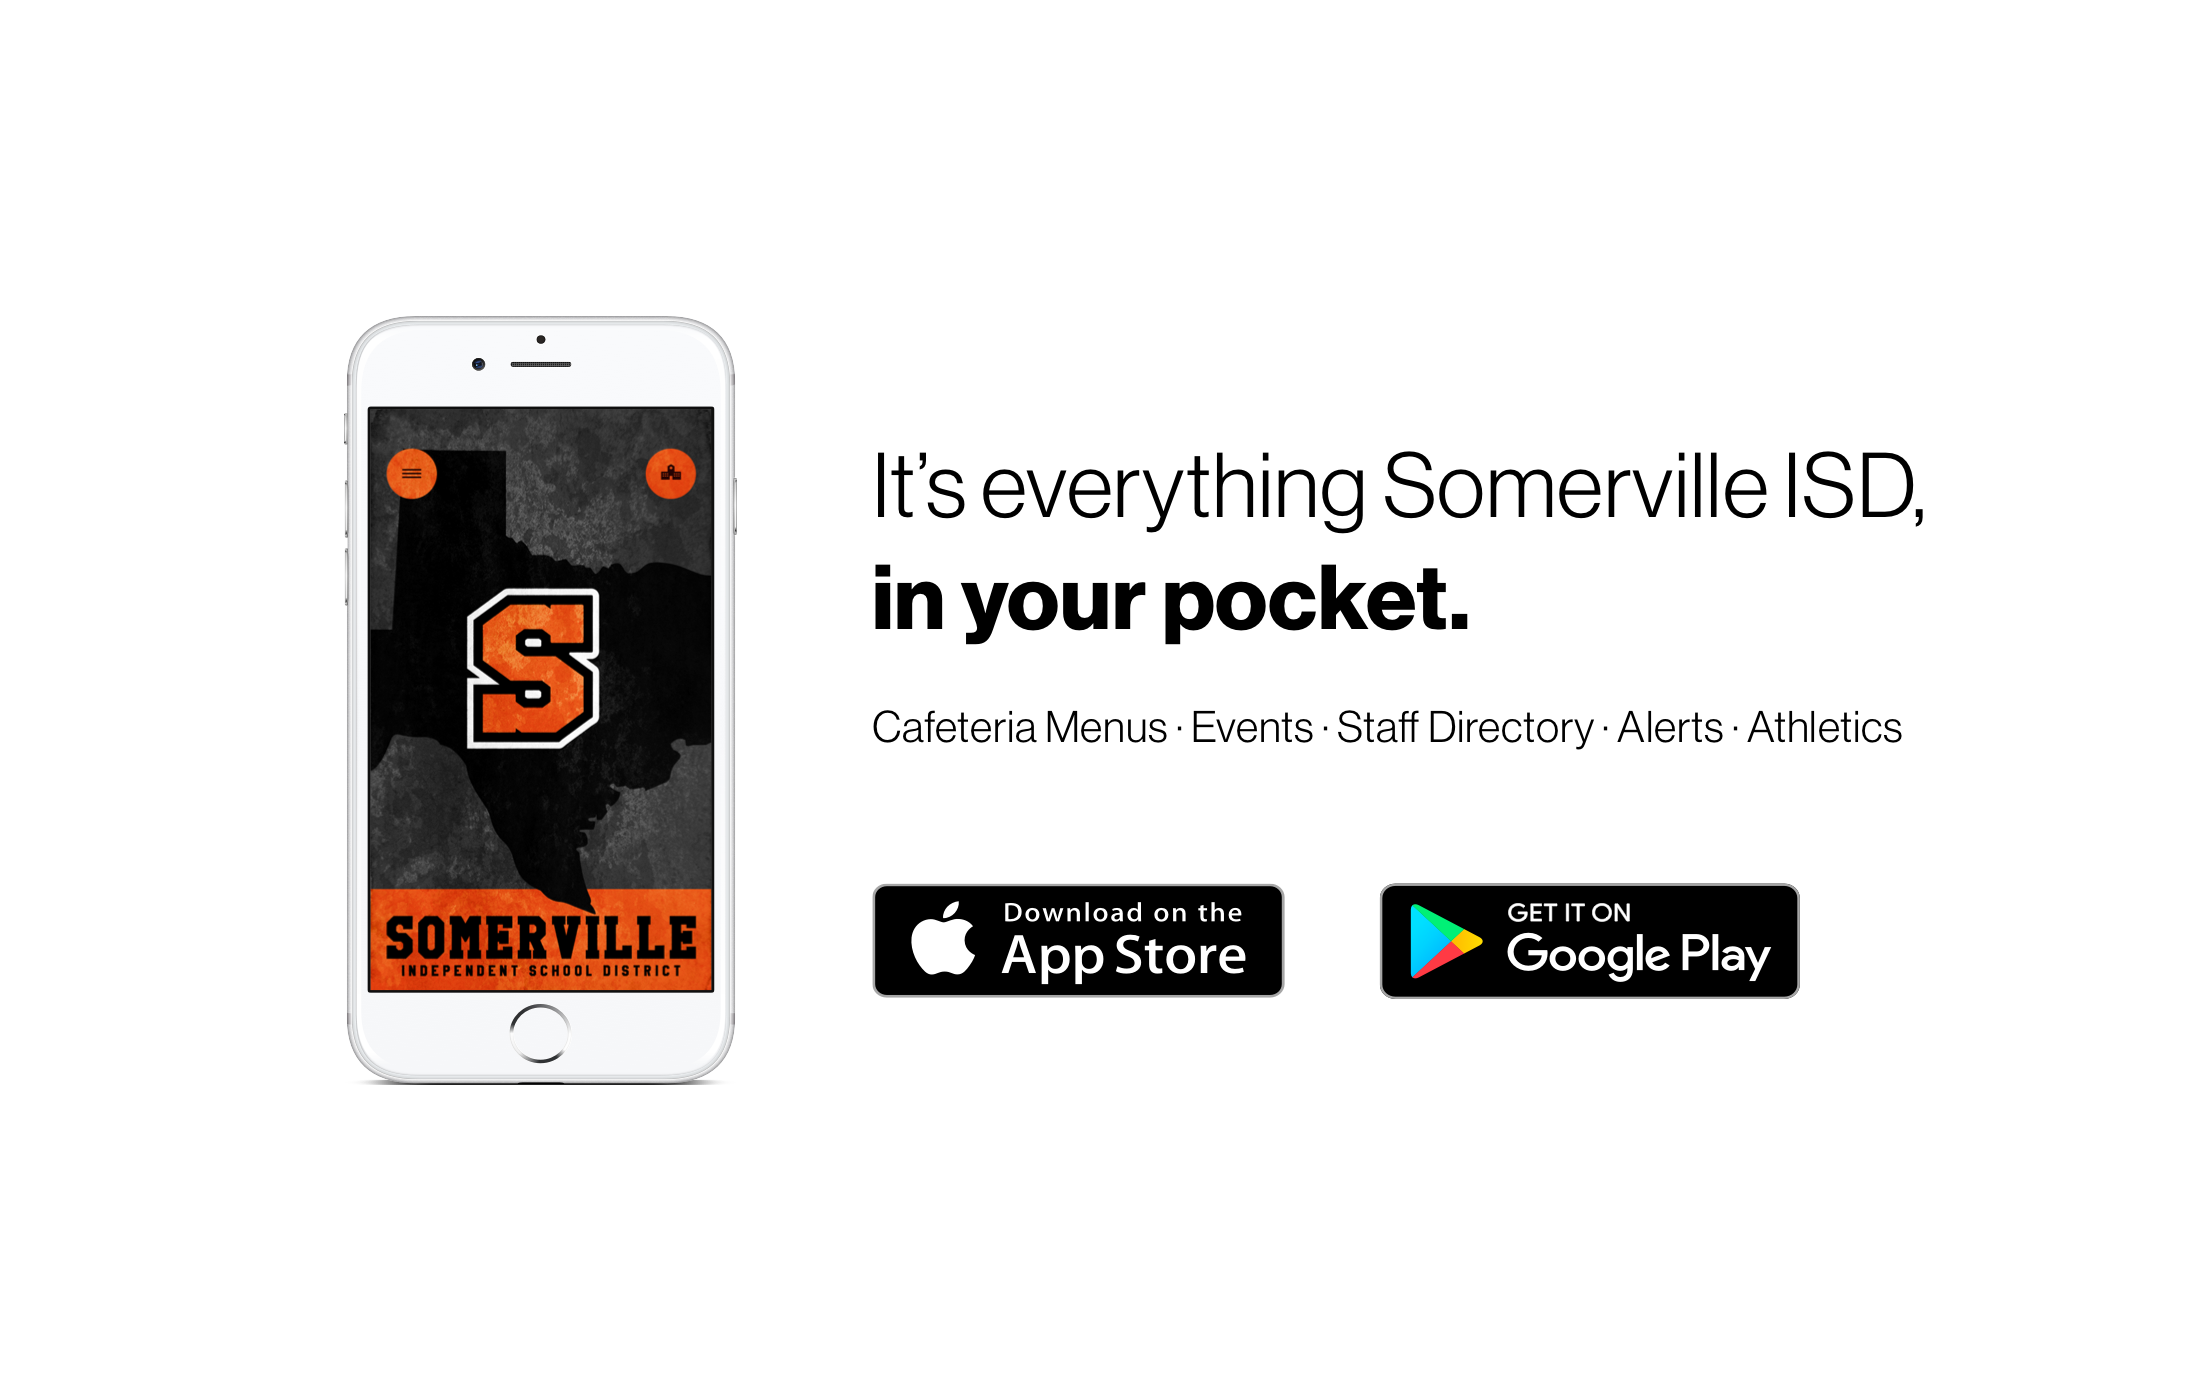 It's everything Somerville ISD, in your pocket.